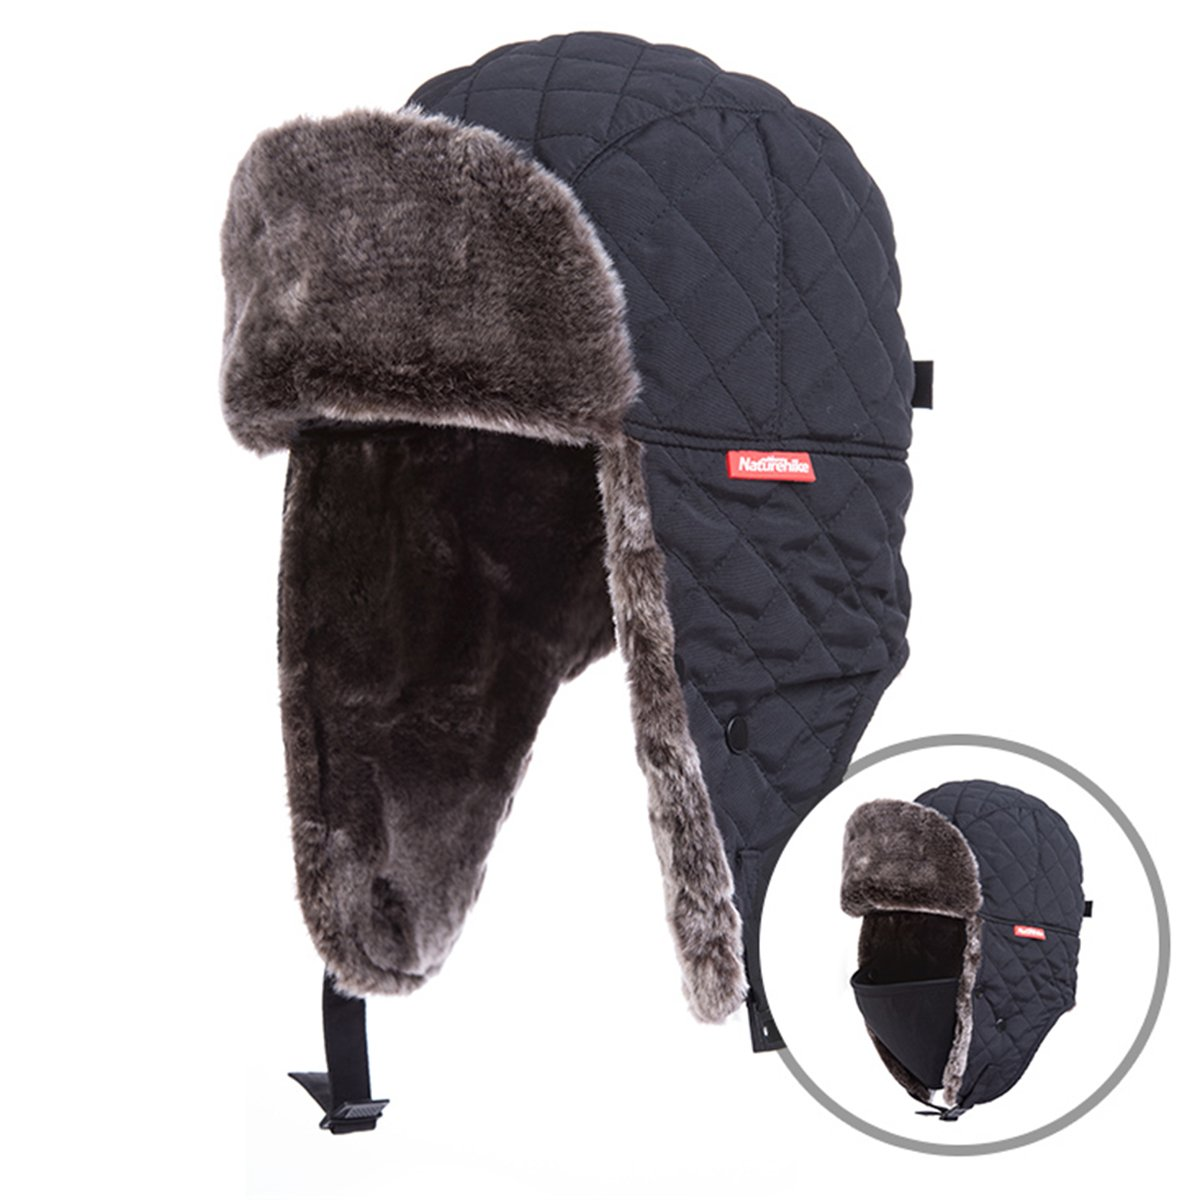 Azarxis Unisex Winter Trapper Hat Hunting Hat Ushanka Ear Flap Chin Strap with Windproof Mask (Black) by Azarxis (Image #1)